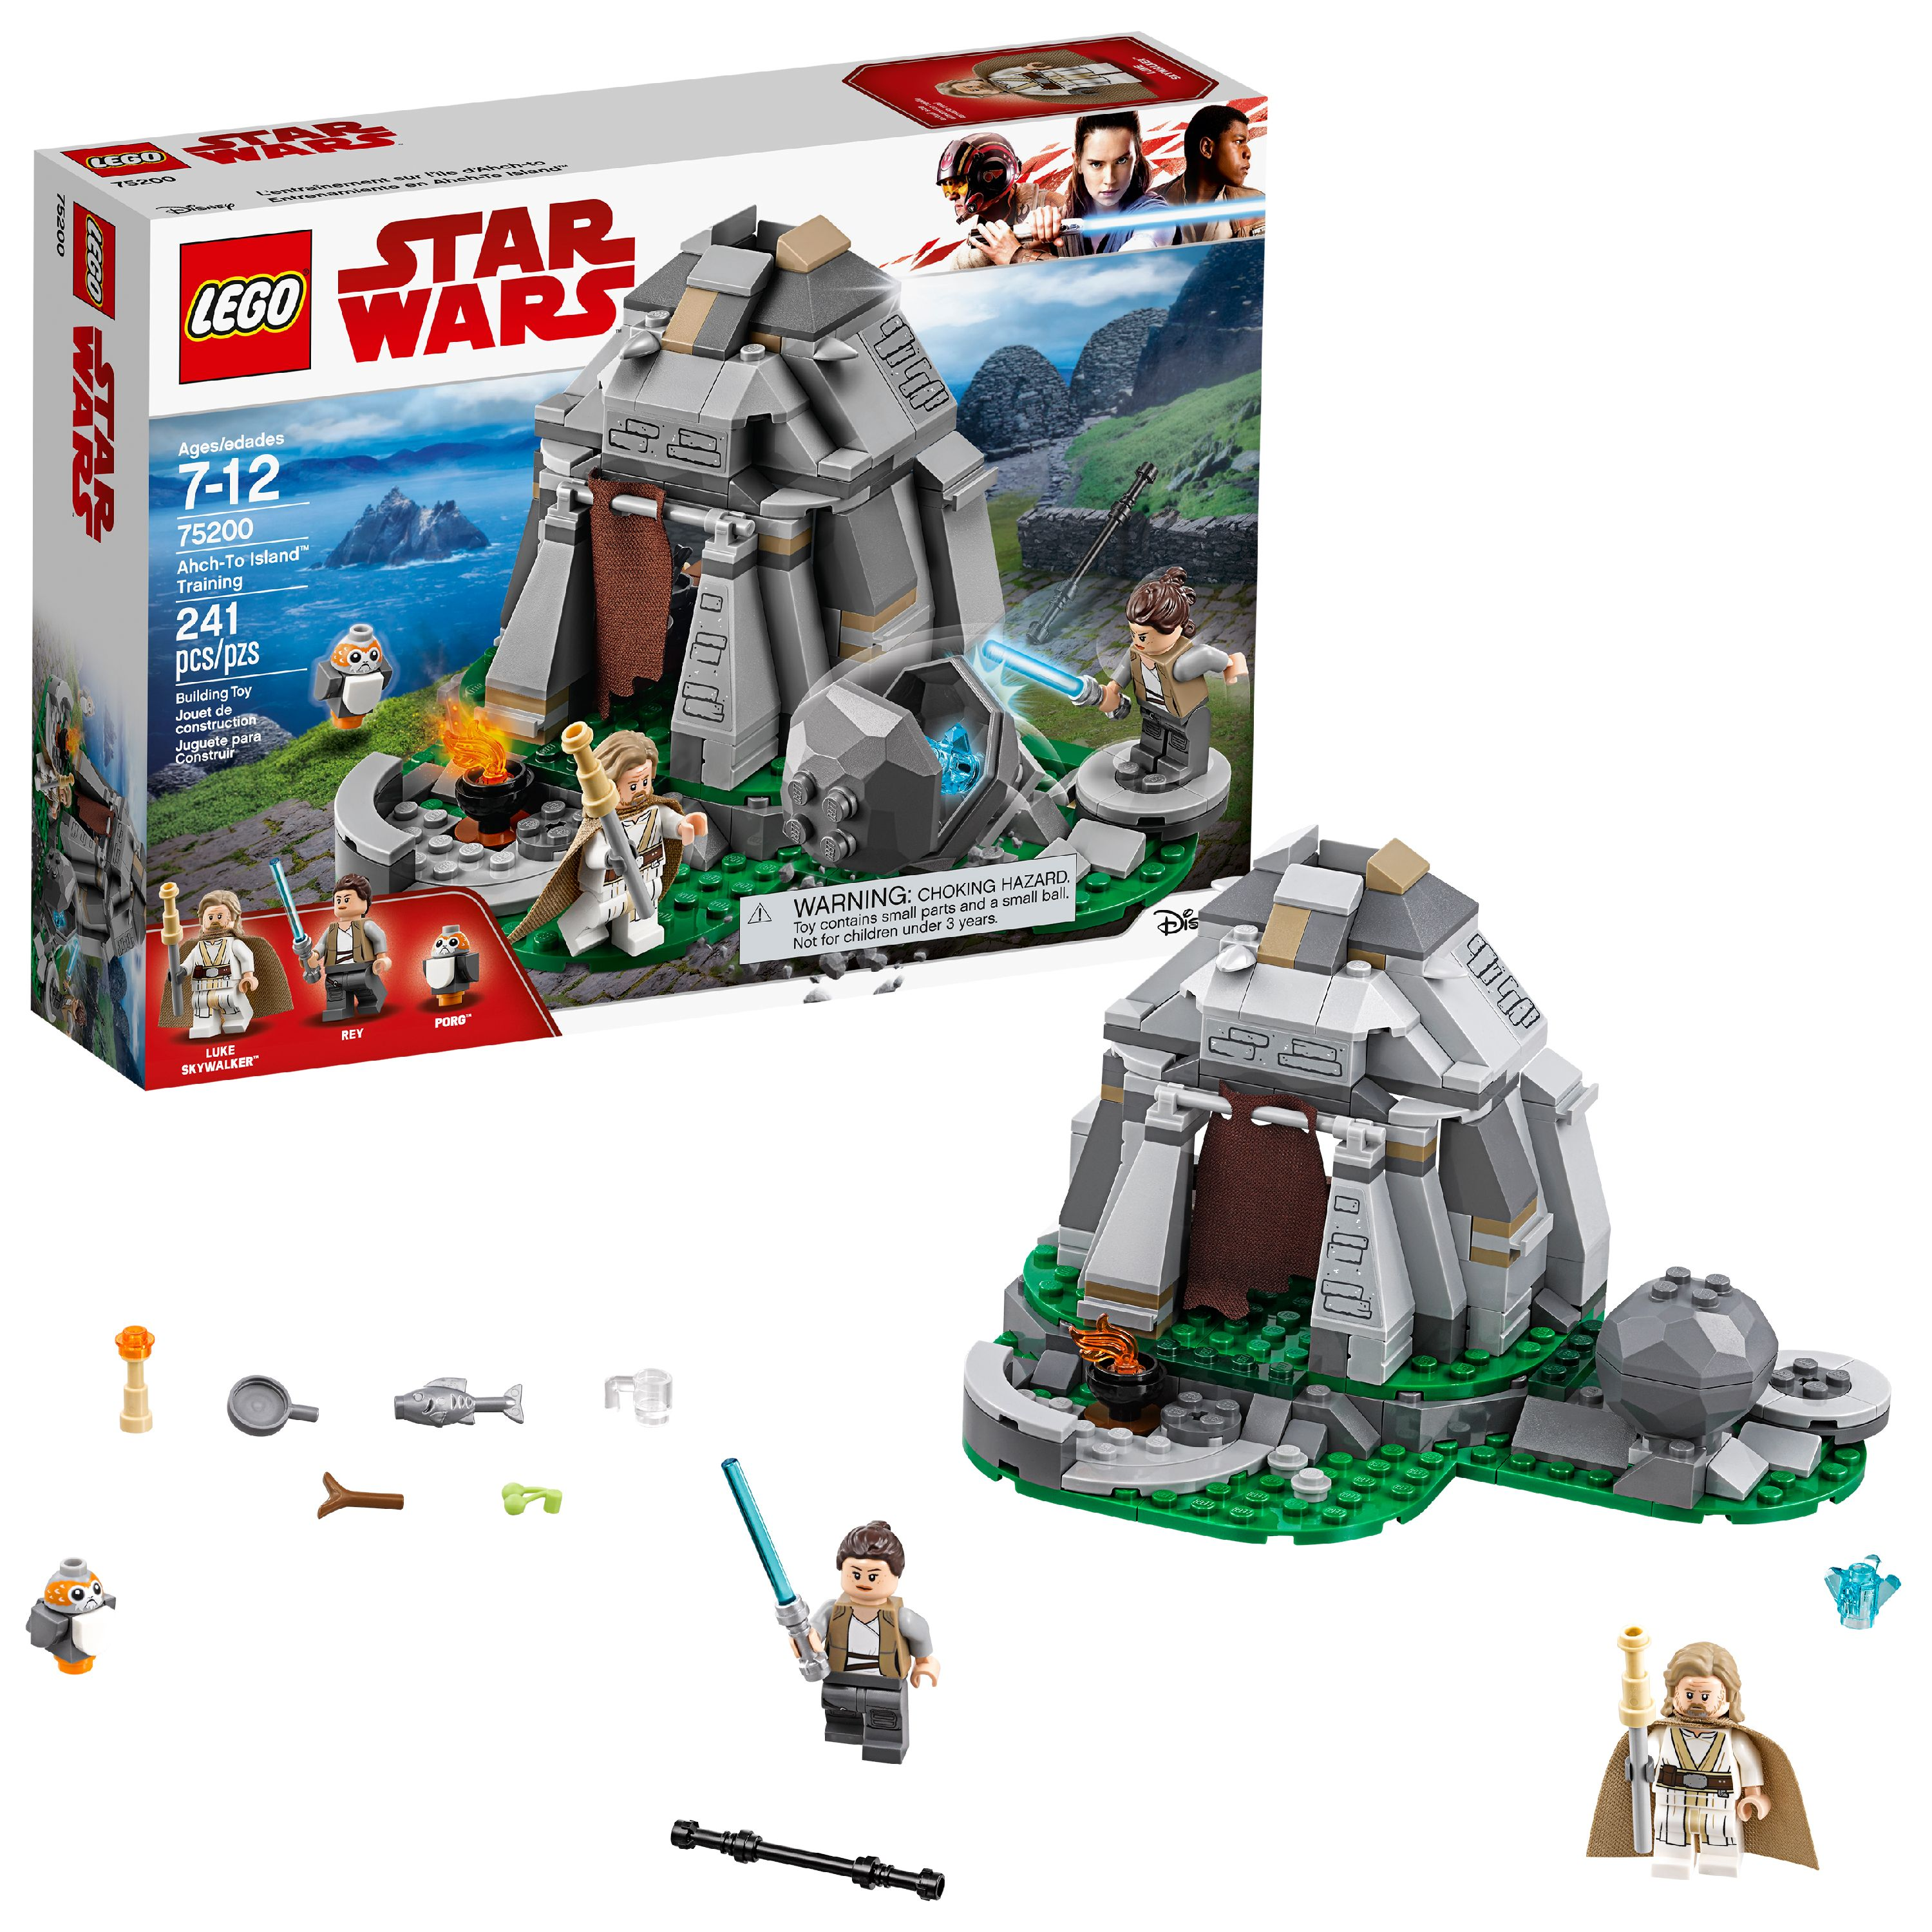 LEGO Star Wars TM Ahch-To Island Training 75200 Building Set